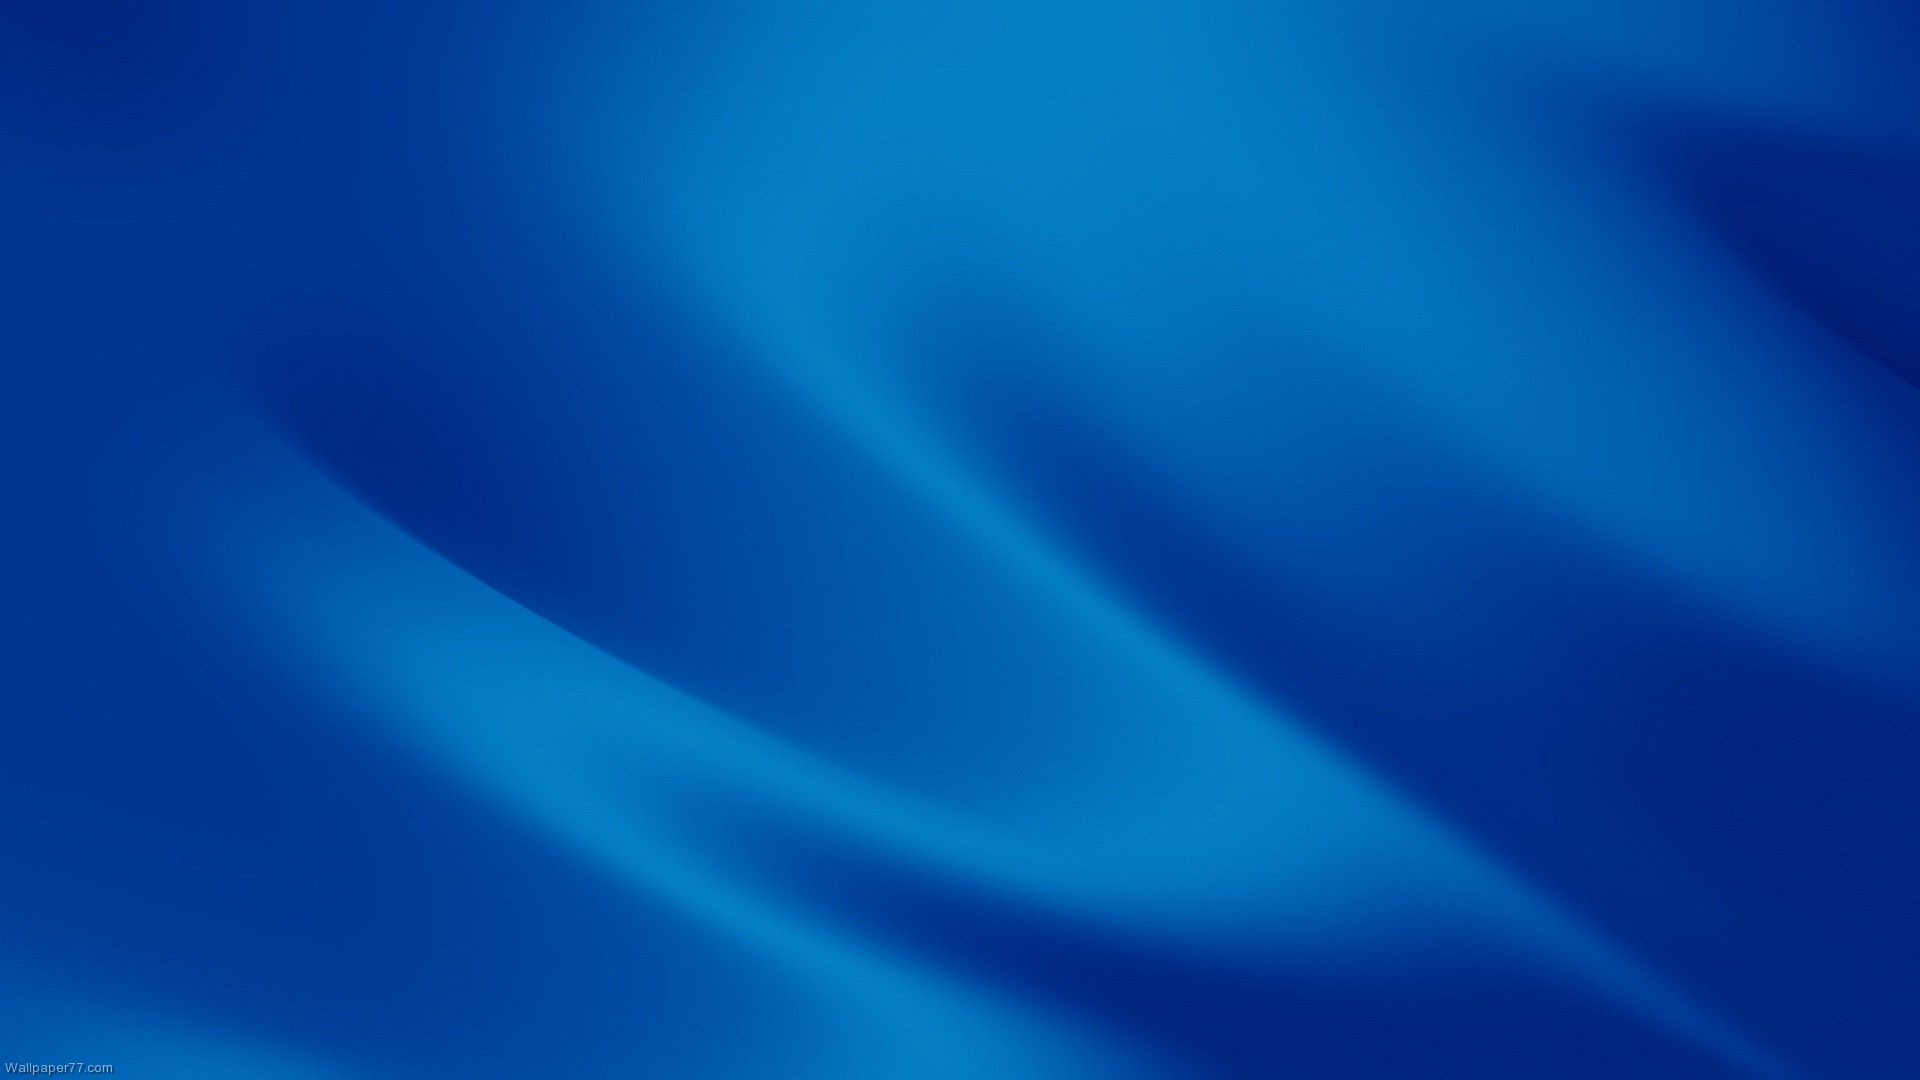 1920x1080 interior-dark-blue-wallpaper-aurora-dark-blue-abstract-wallpapers